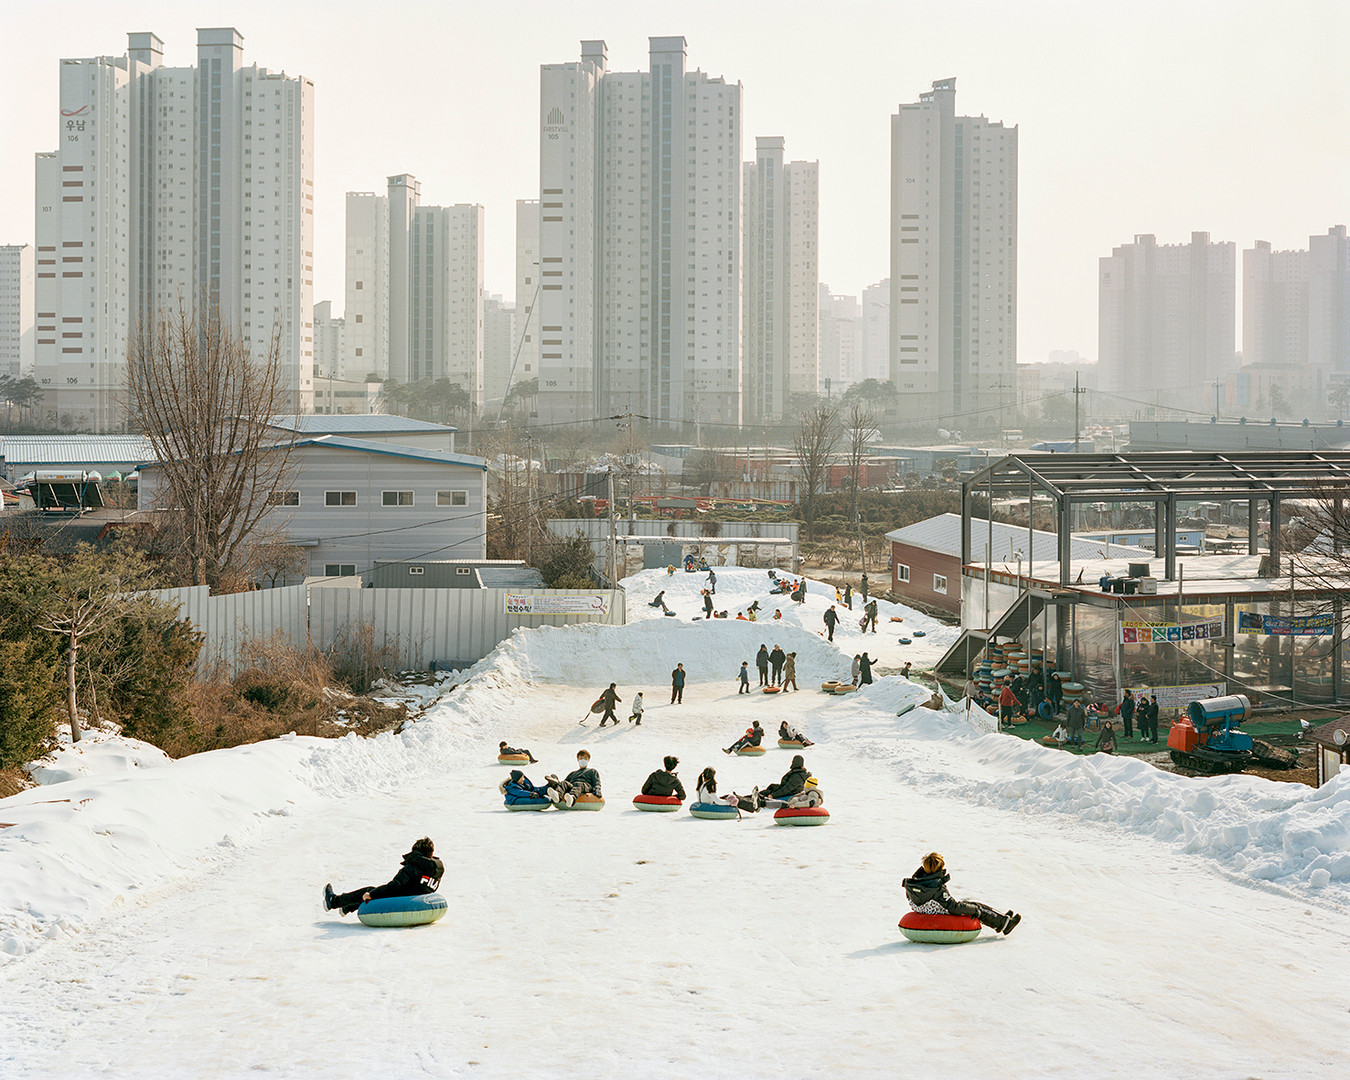 Sledding Slope, Goyang, January 2019